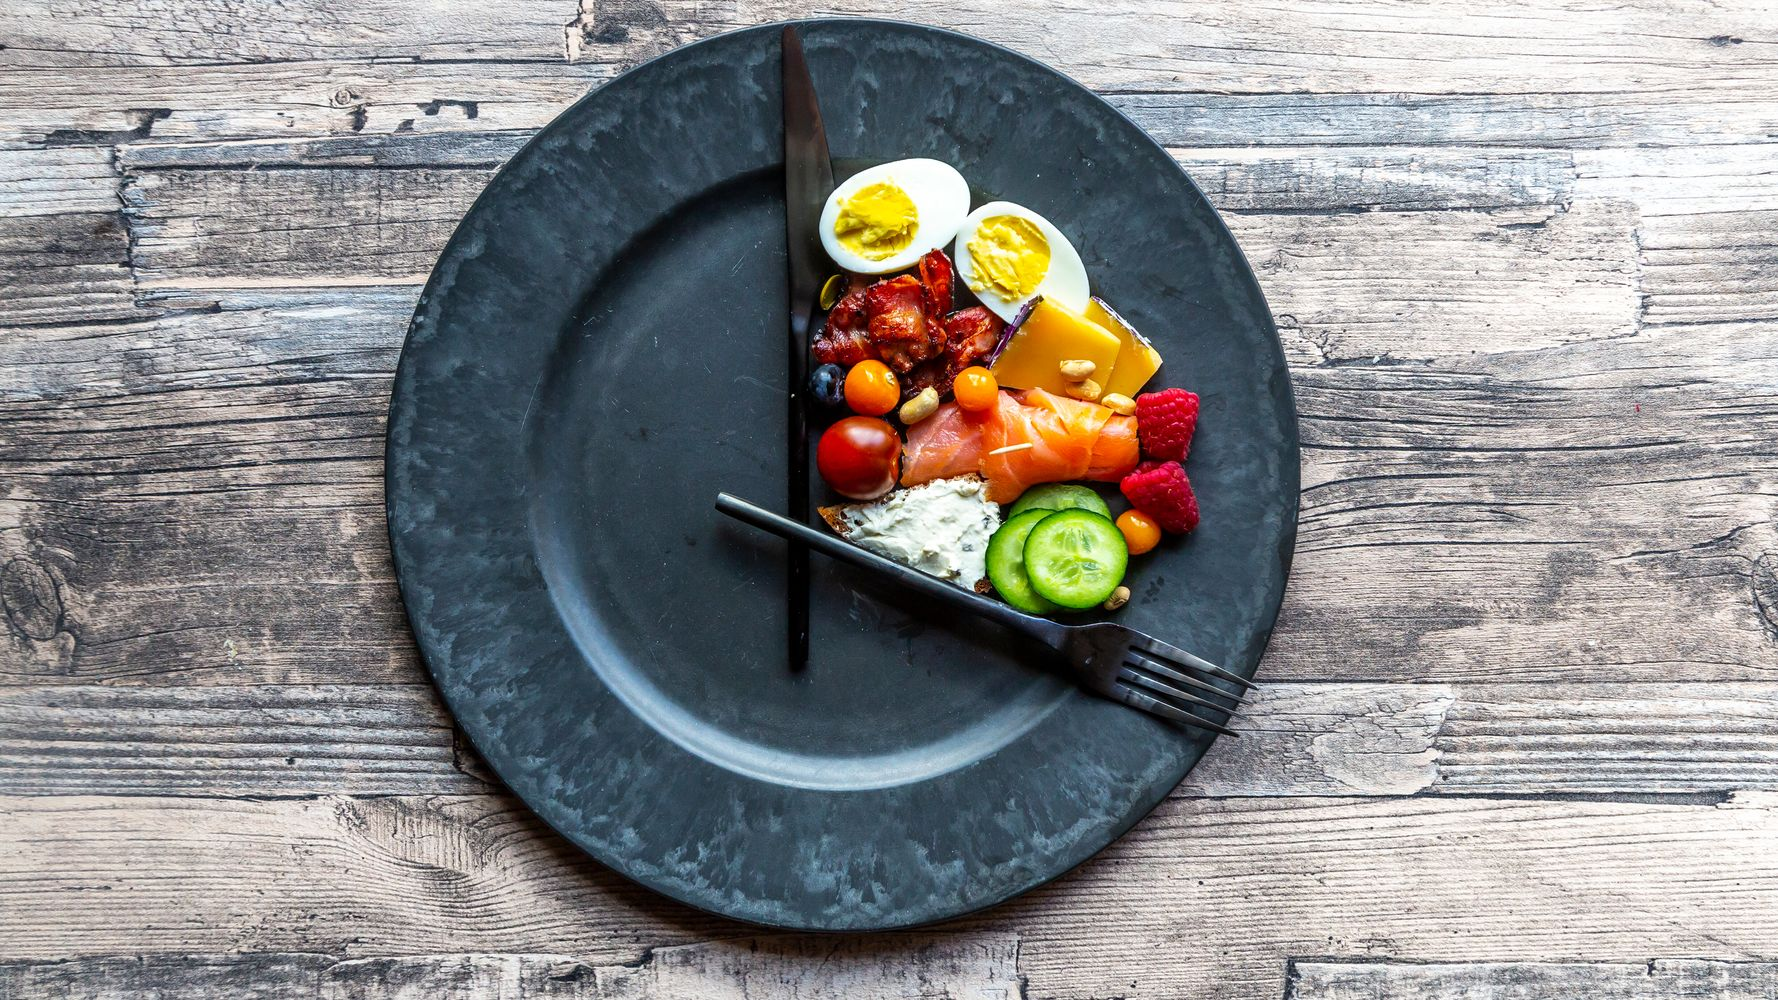 Image of food on a plate that represents intuitive eating.